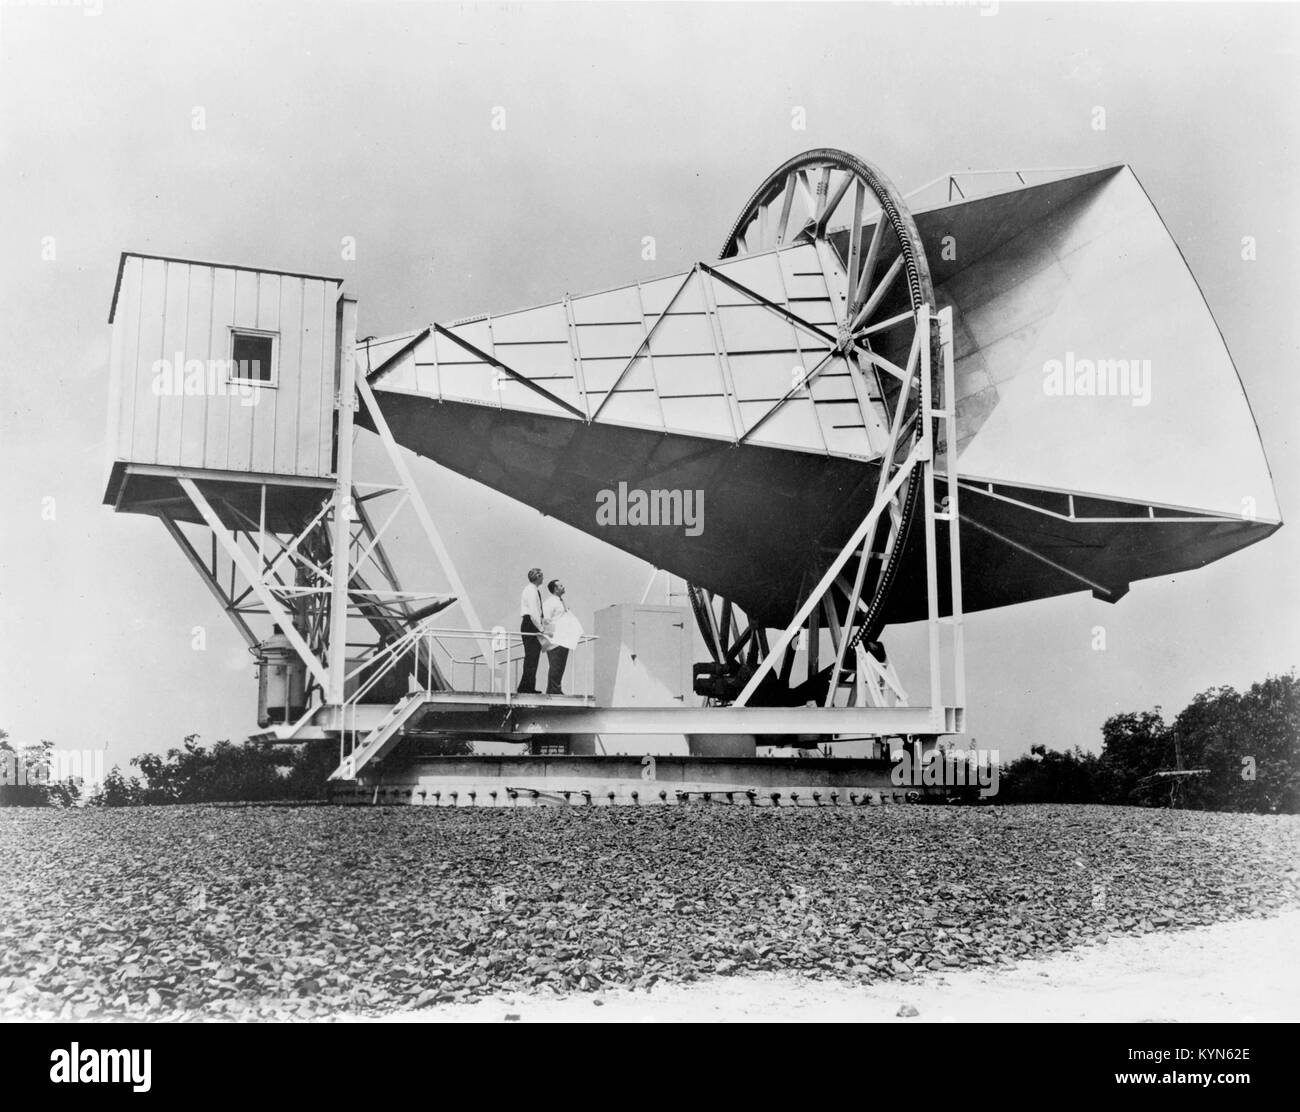 The Holmdel Horn Antenna is a large microwave horn antenna that was used as a radio telescope during the 1960s at - Stock Image